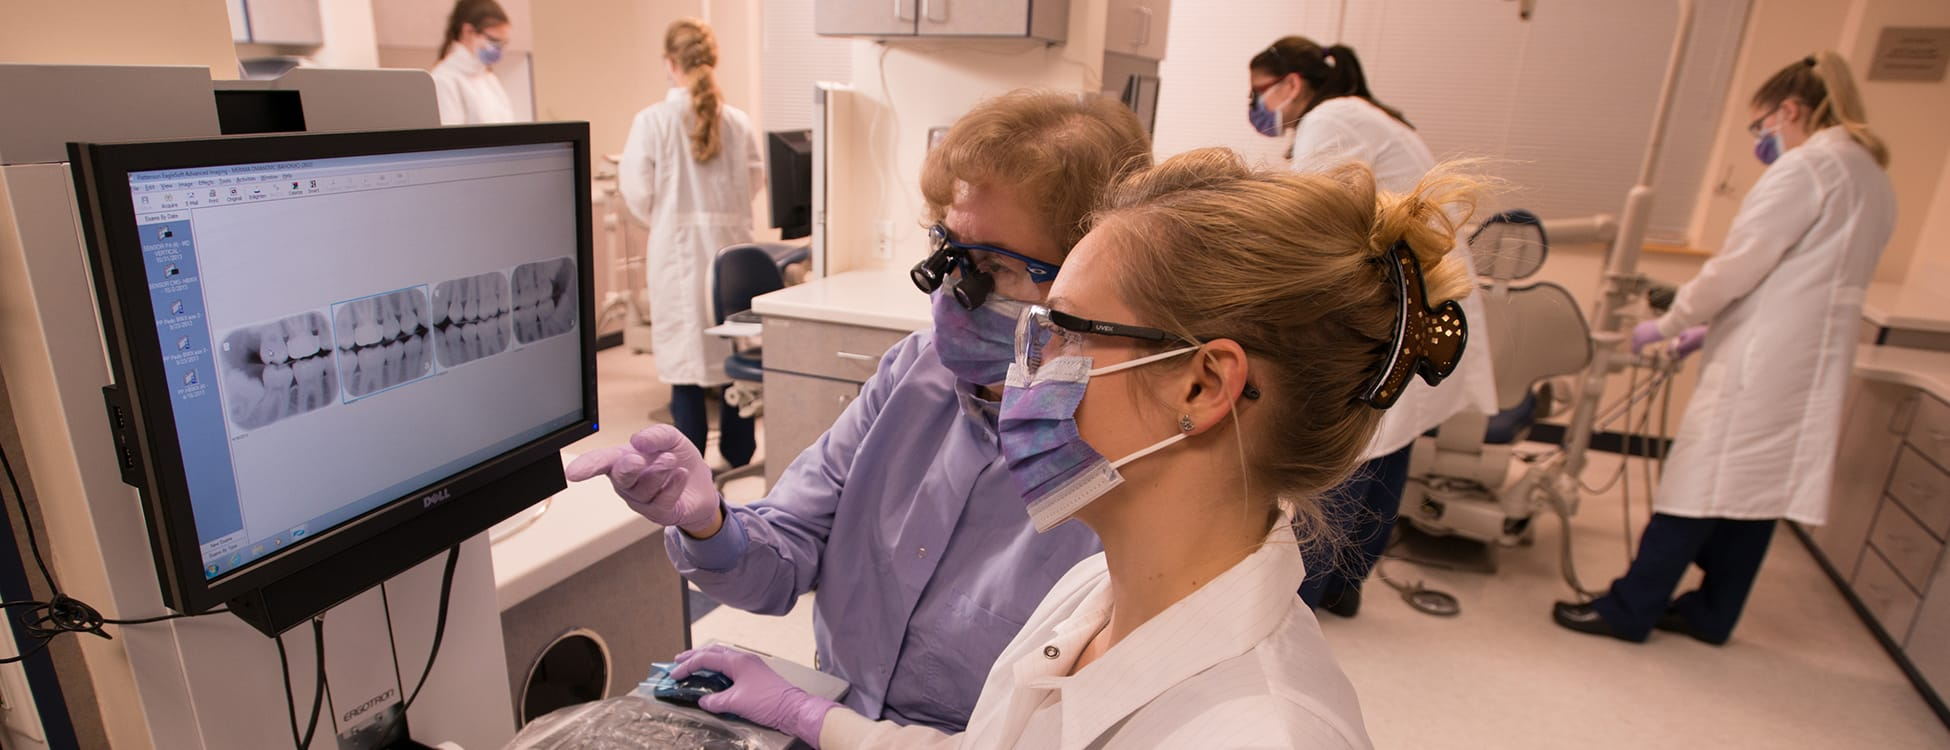 dental hygiene, female students, xrays, hands on, laboratory